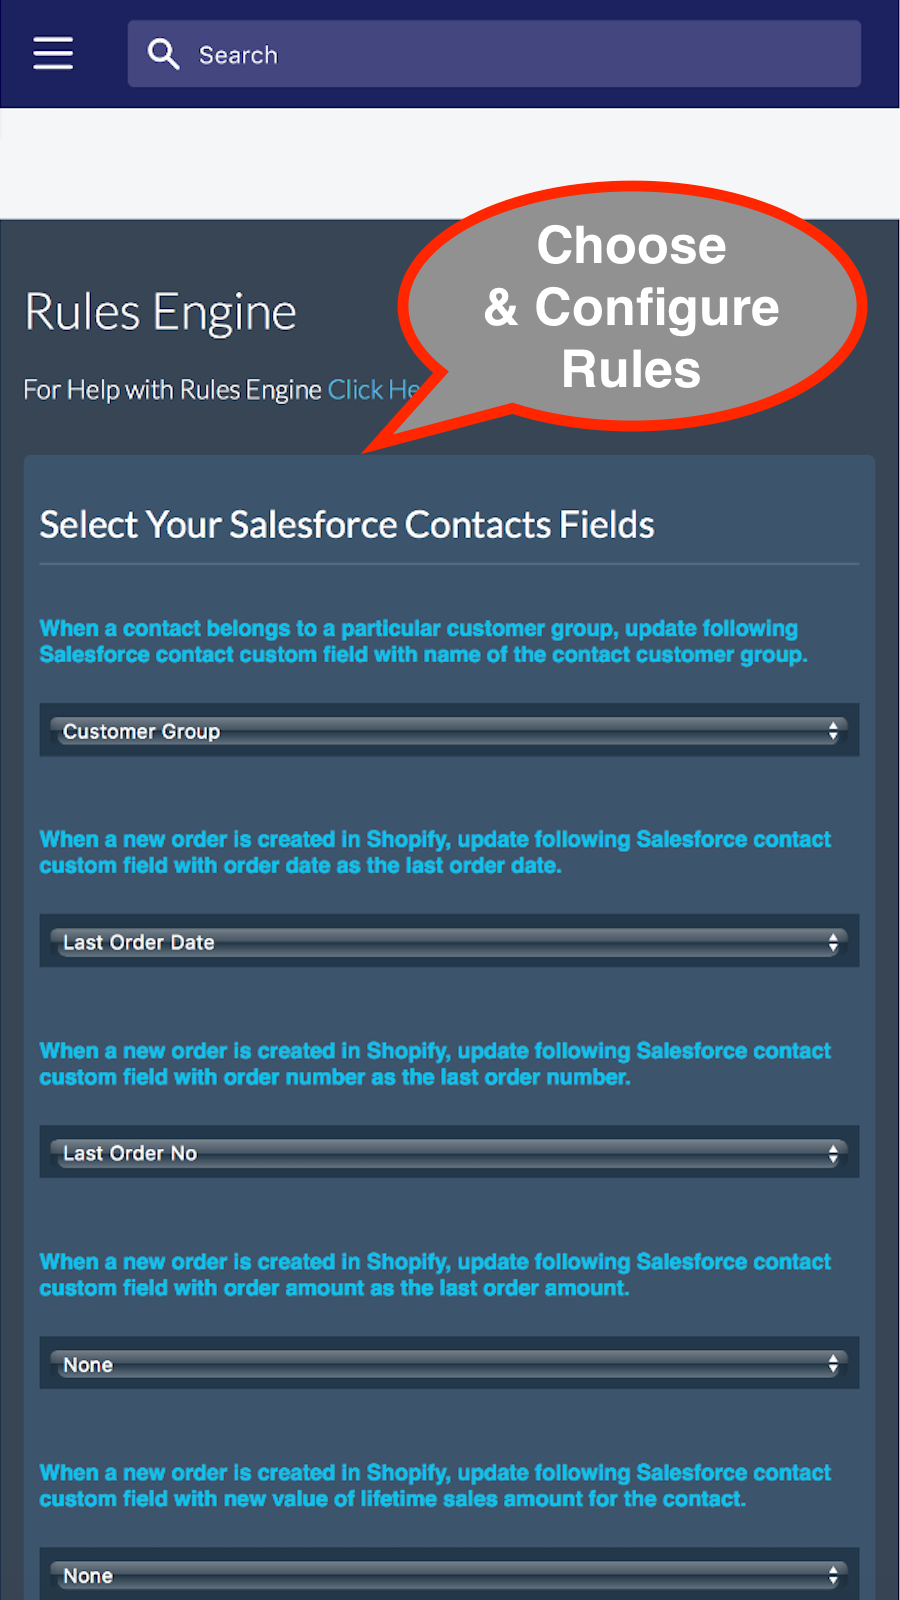 Rules Engine for Salesforce, Zoho CRM or HubSpot